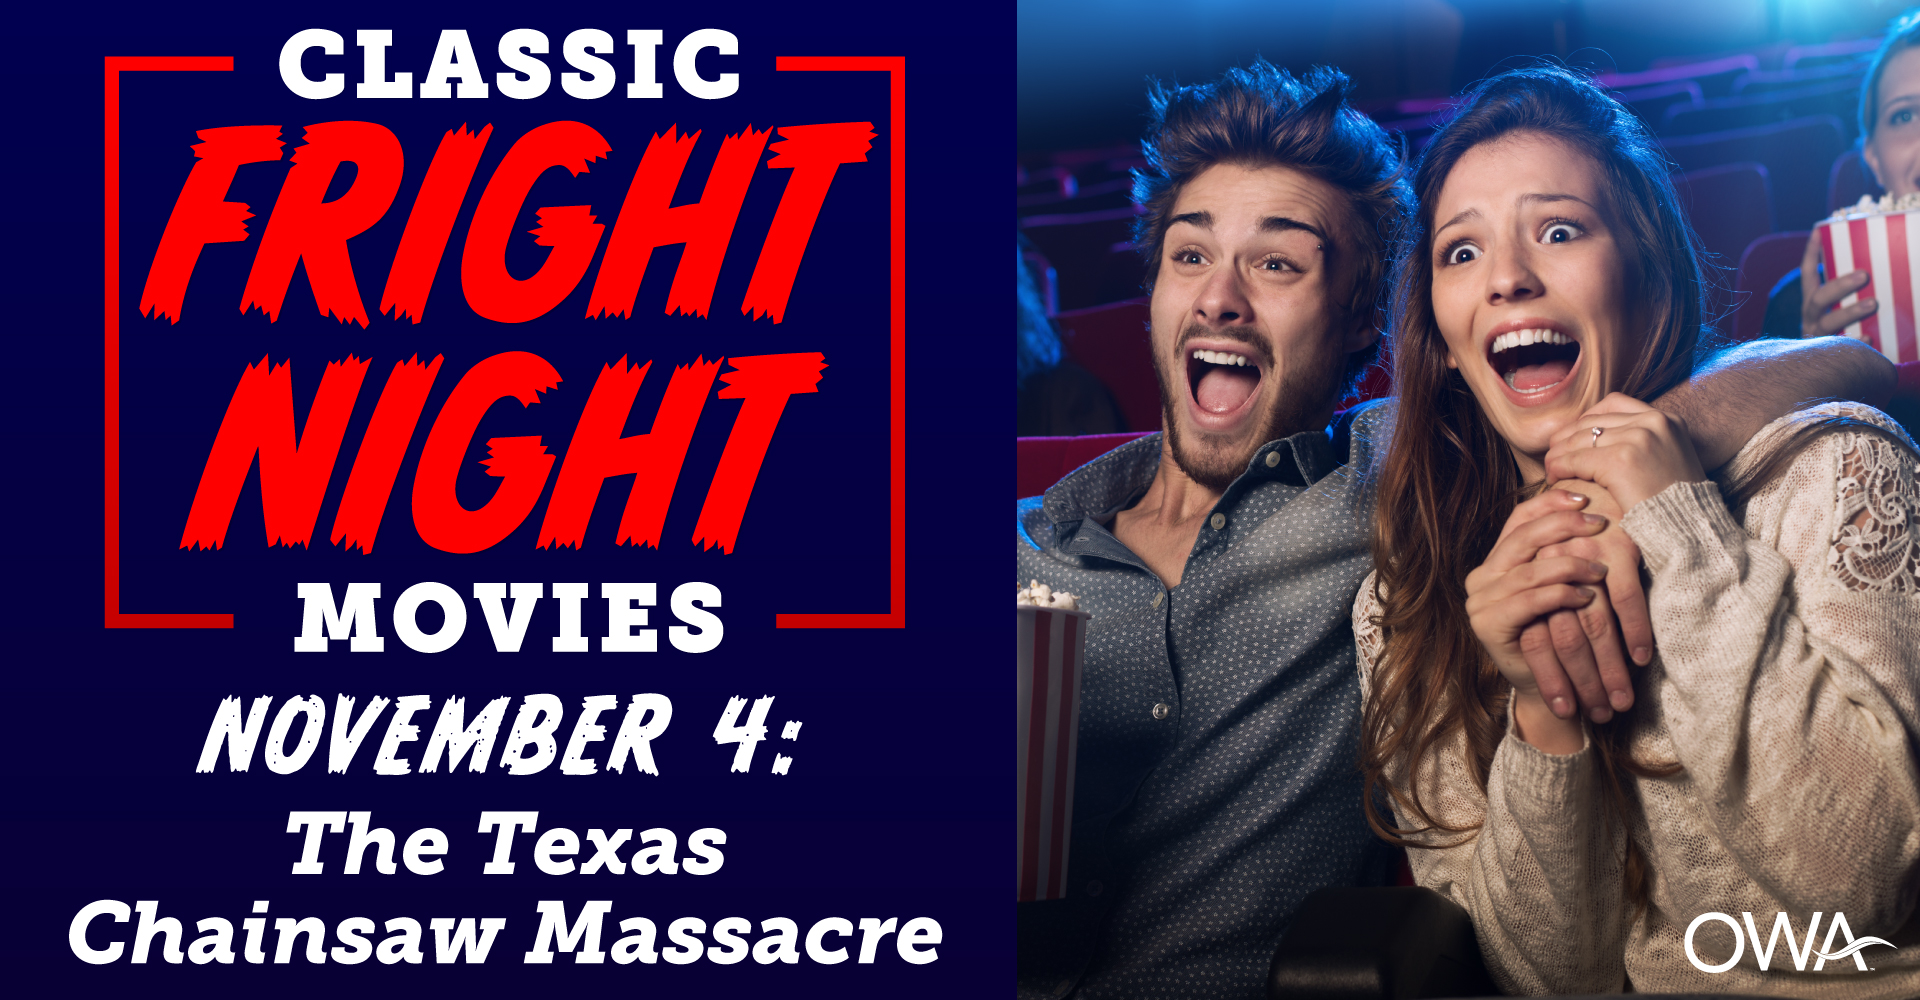 Fright Night Movies: The Texas Chainsaw Massacre (2003)